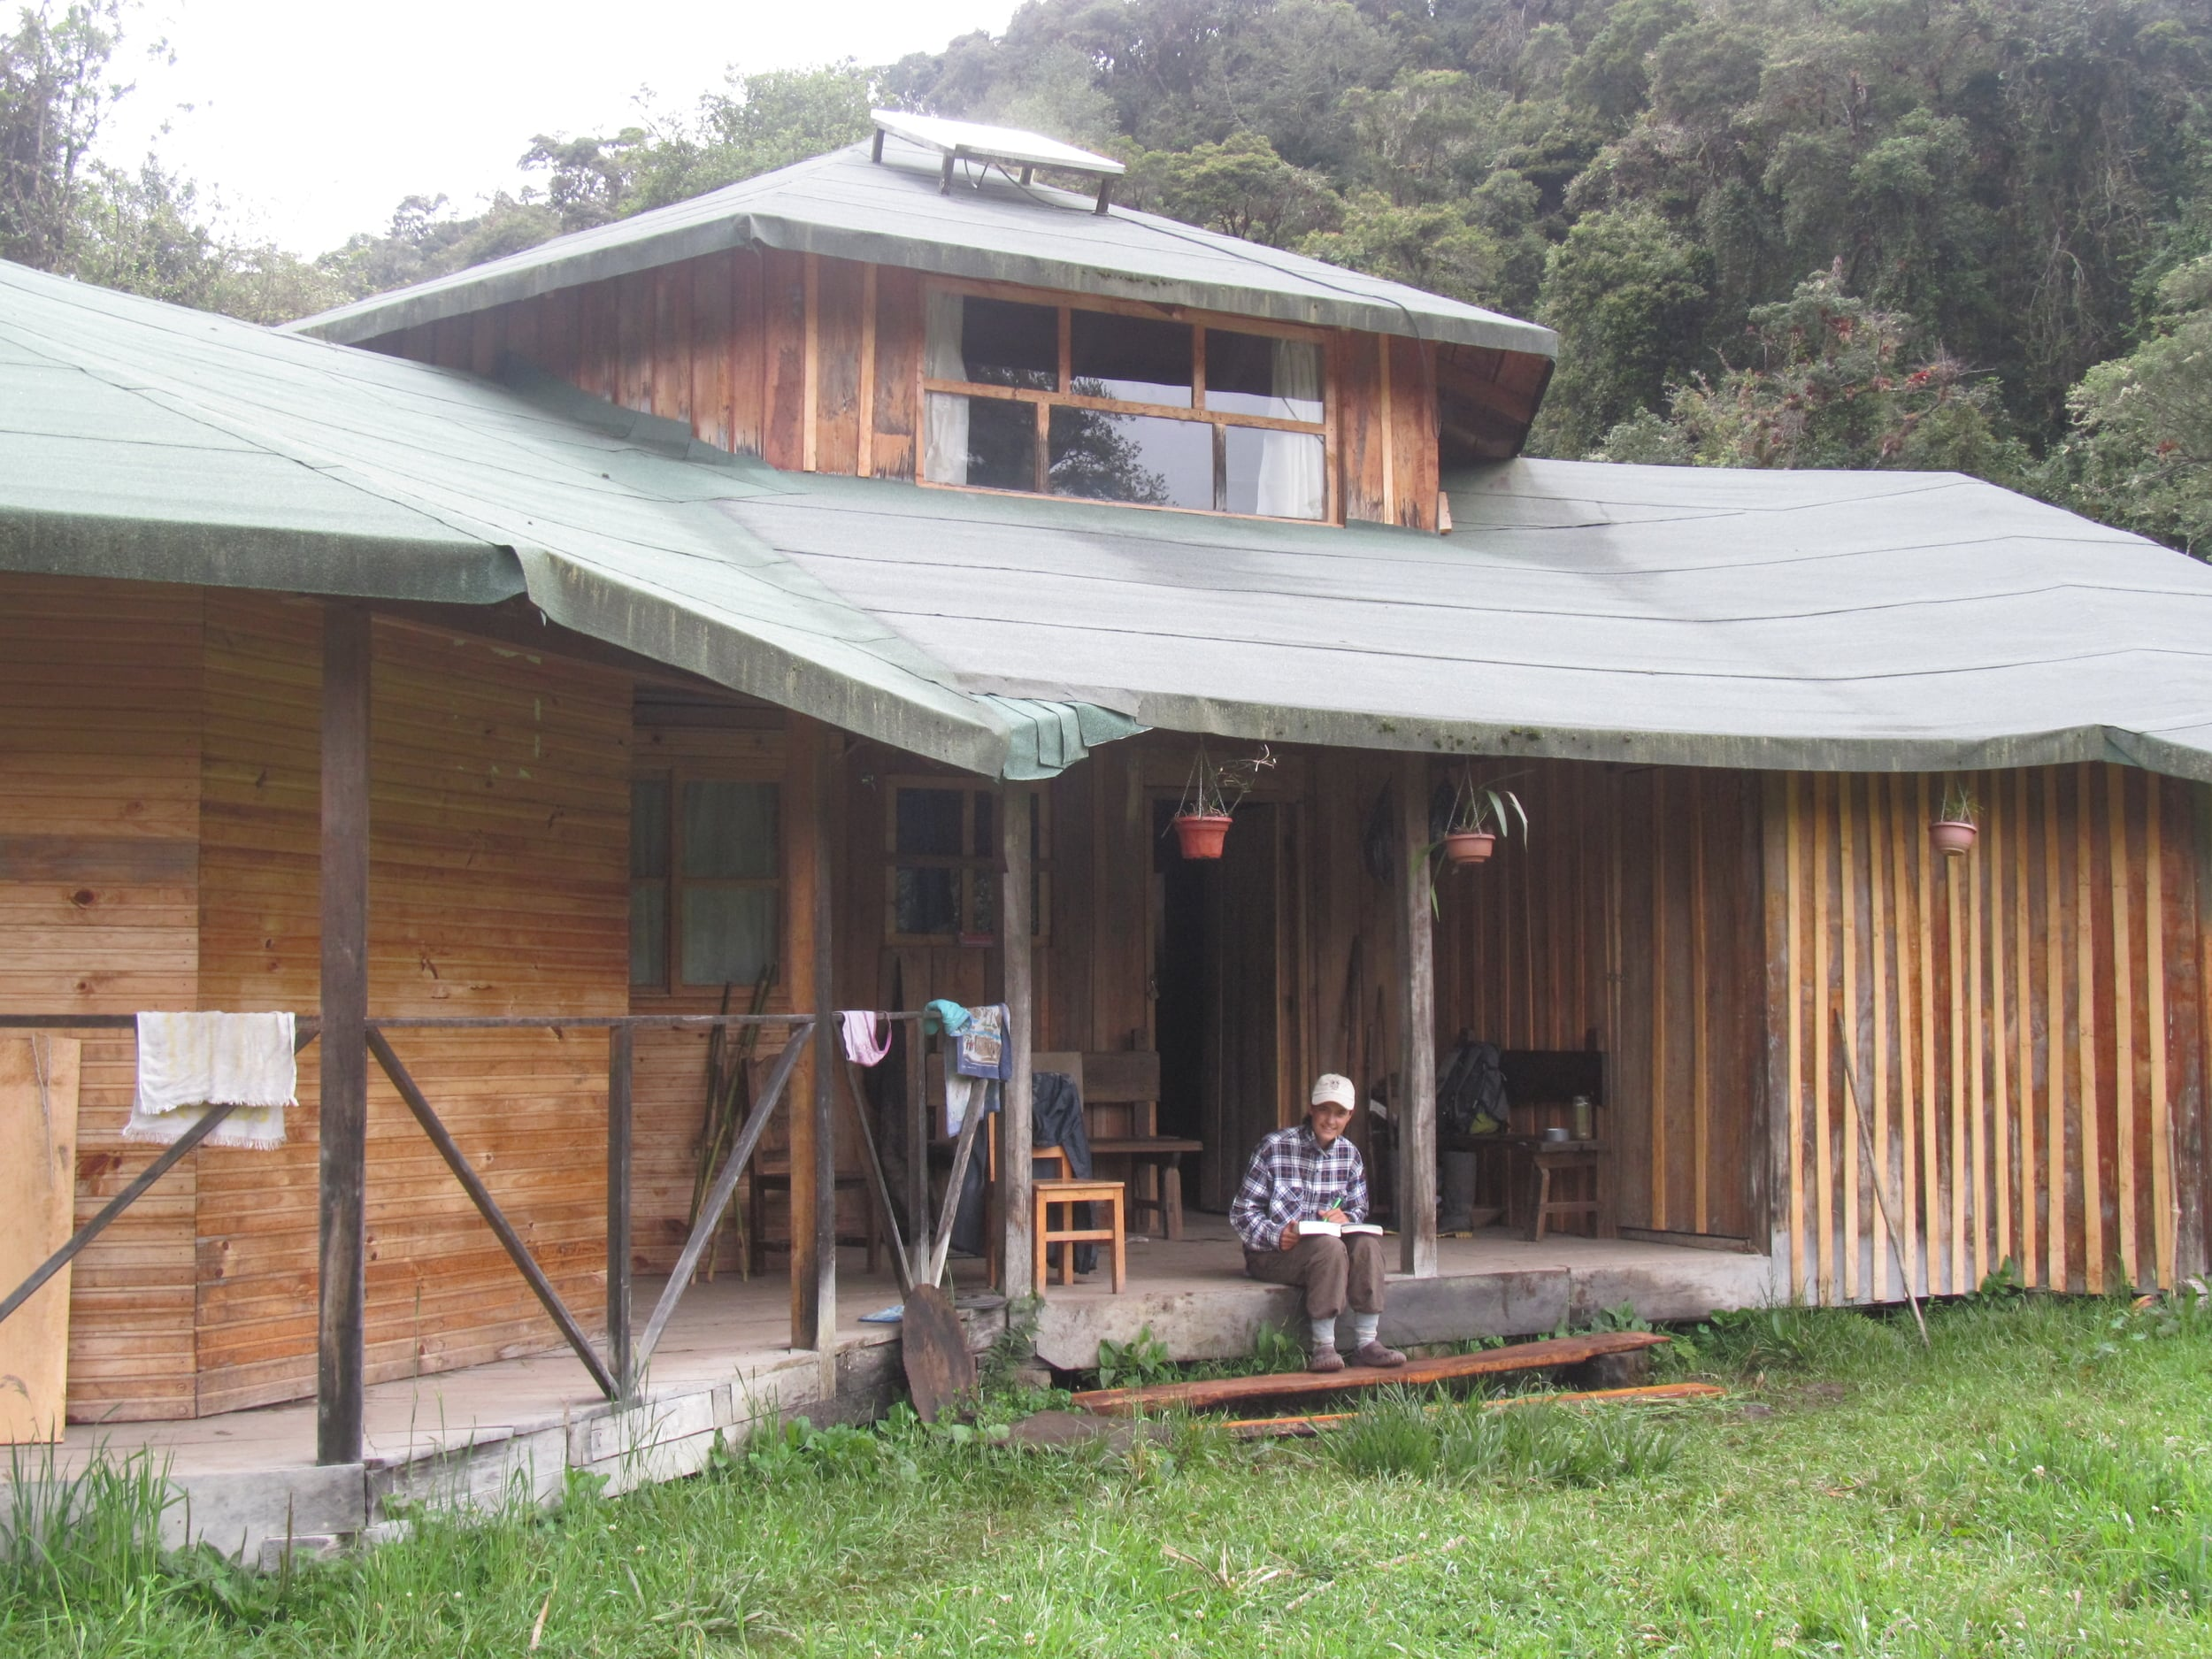 Our cabin in the forest for the two weeks we volunteered with the Andean Bear Foundation.